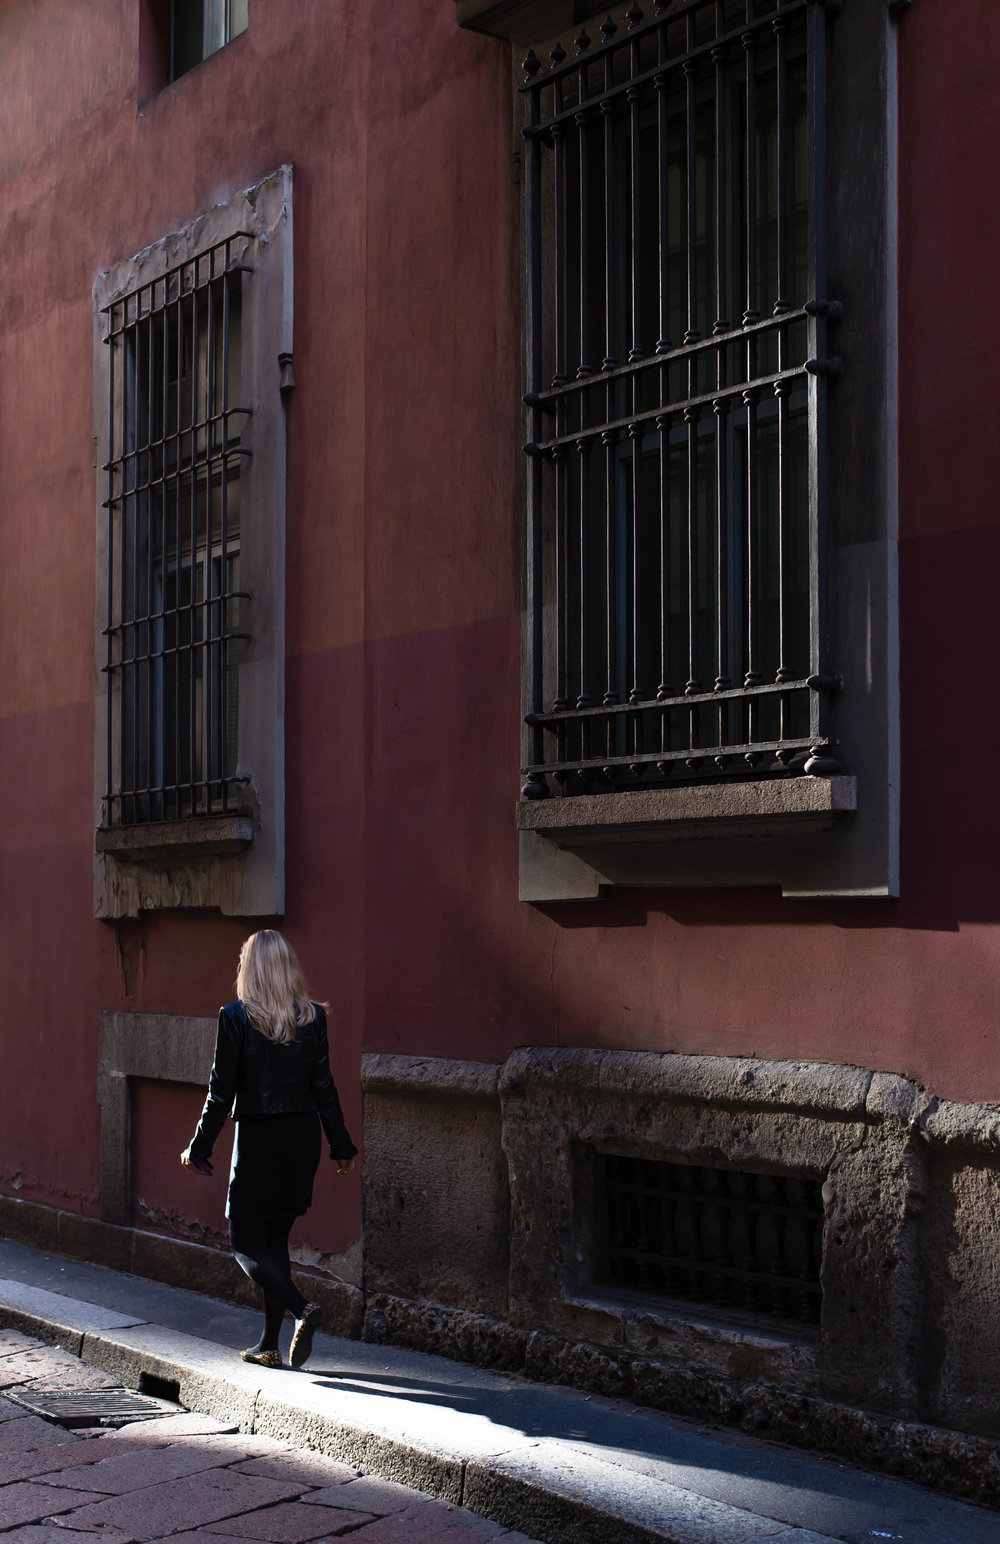 2015_10_16 milano_italia woman in alley morning 1 V1.jpg